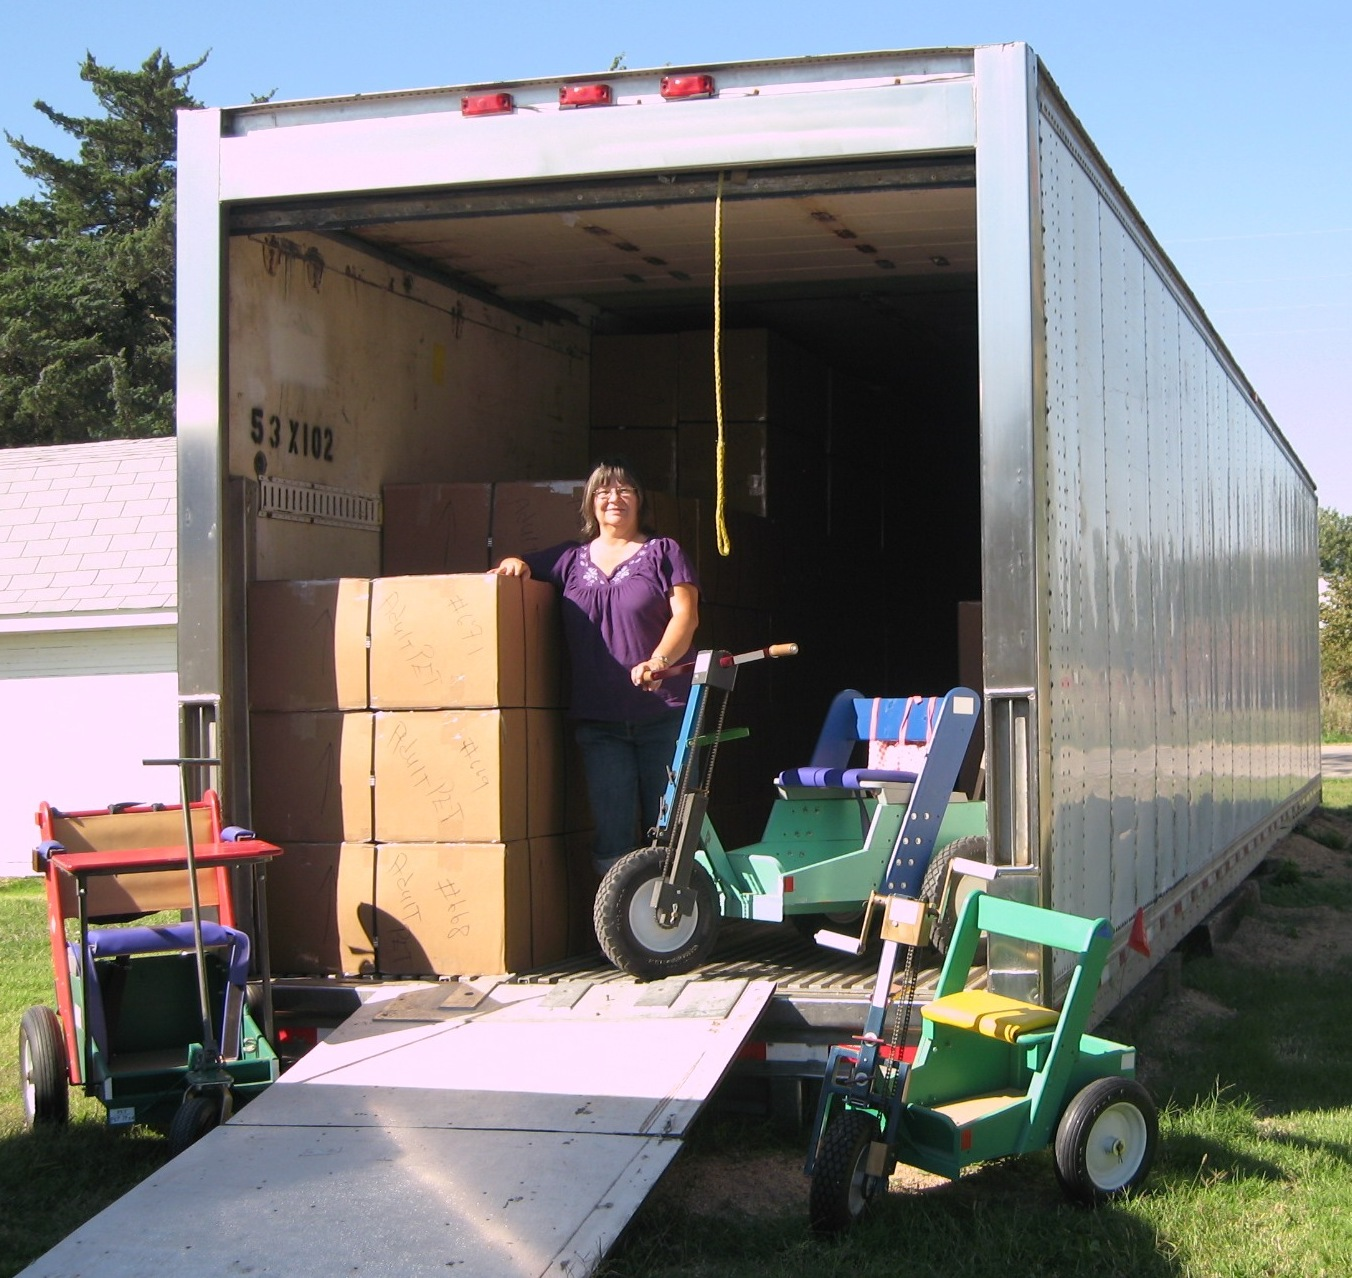 """We also needed a place to store PETs until their shipping date each April. Kirby found a good price on a 53' x 102"""" container. This will save time so we can build more PETs. We already have 121 PETs stored in it for our next mission. When full, the container will hold about 193 PETs, plus sewing machines and Bibles"""